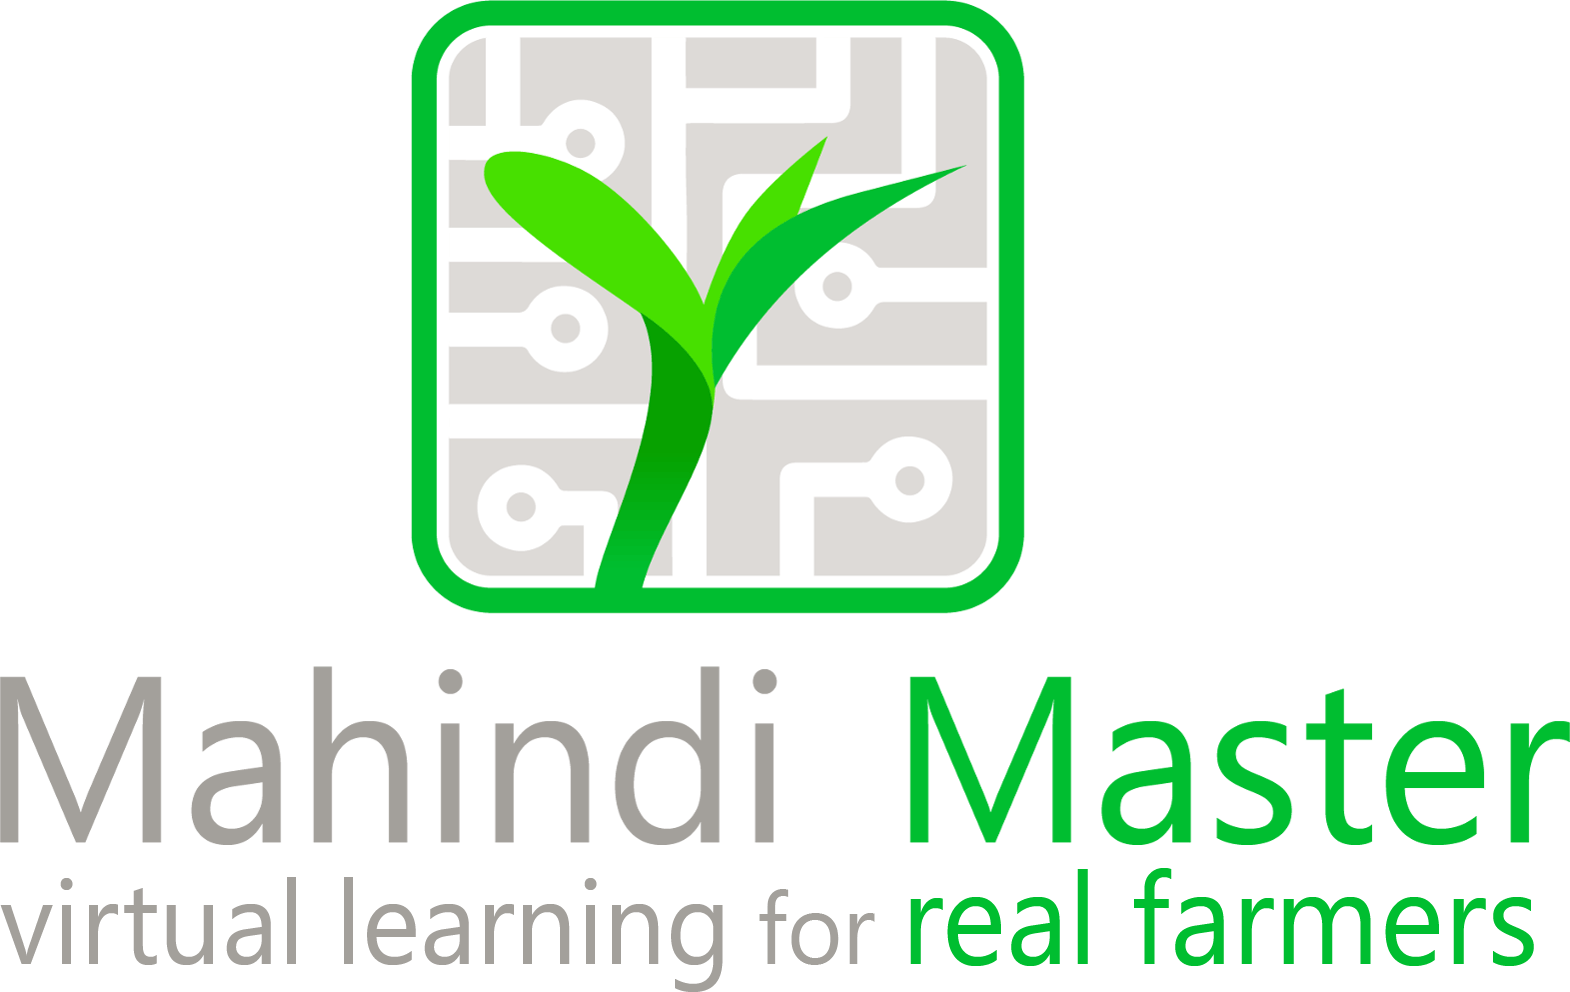 Mahindi Master - Virtual learning for real farmers